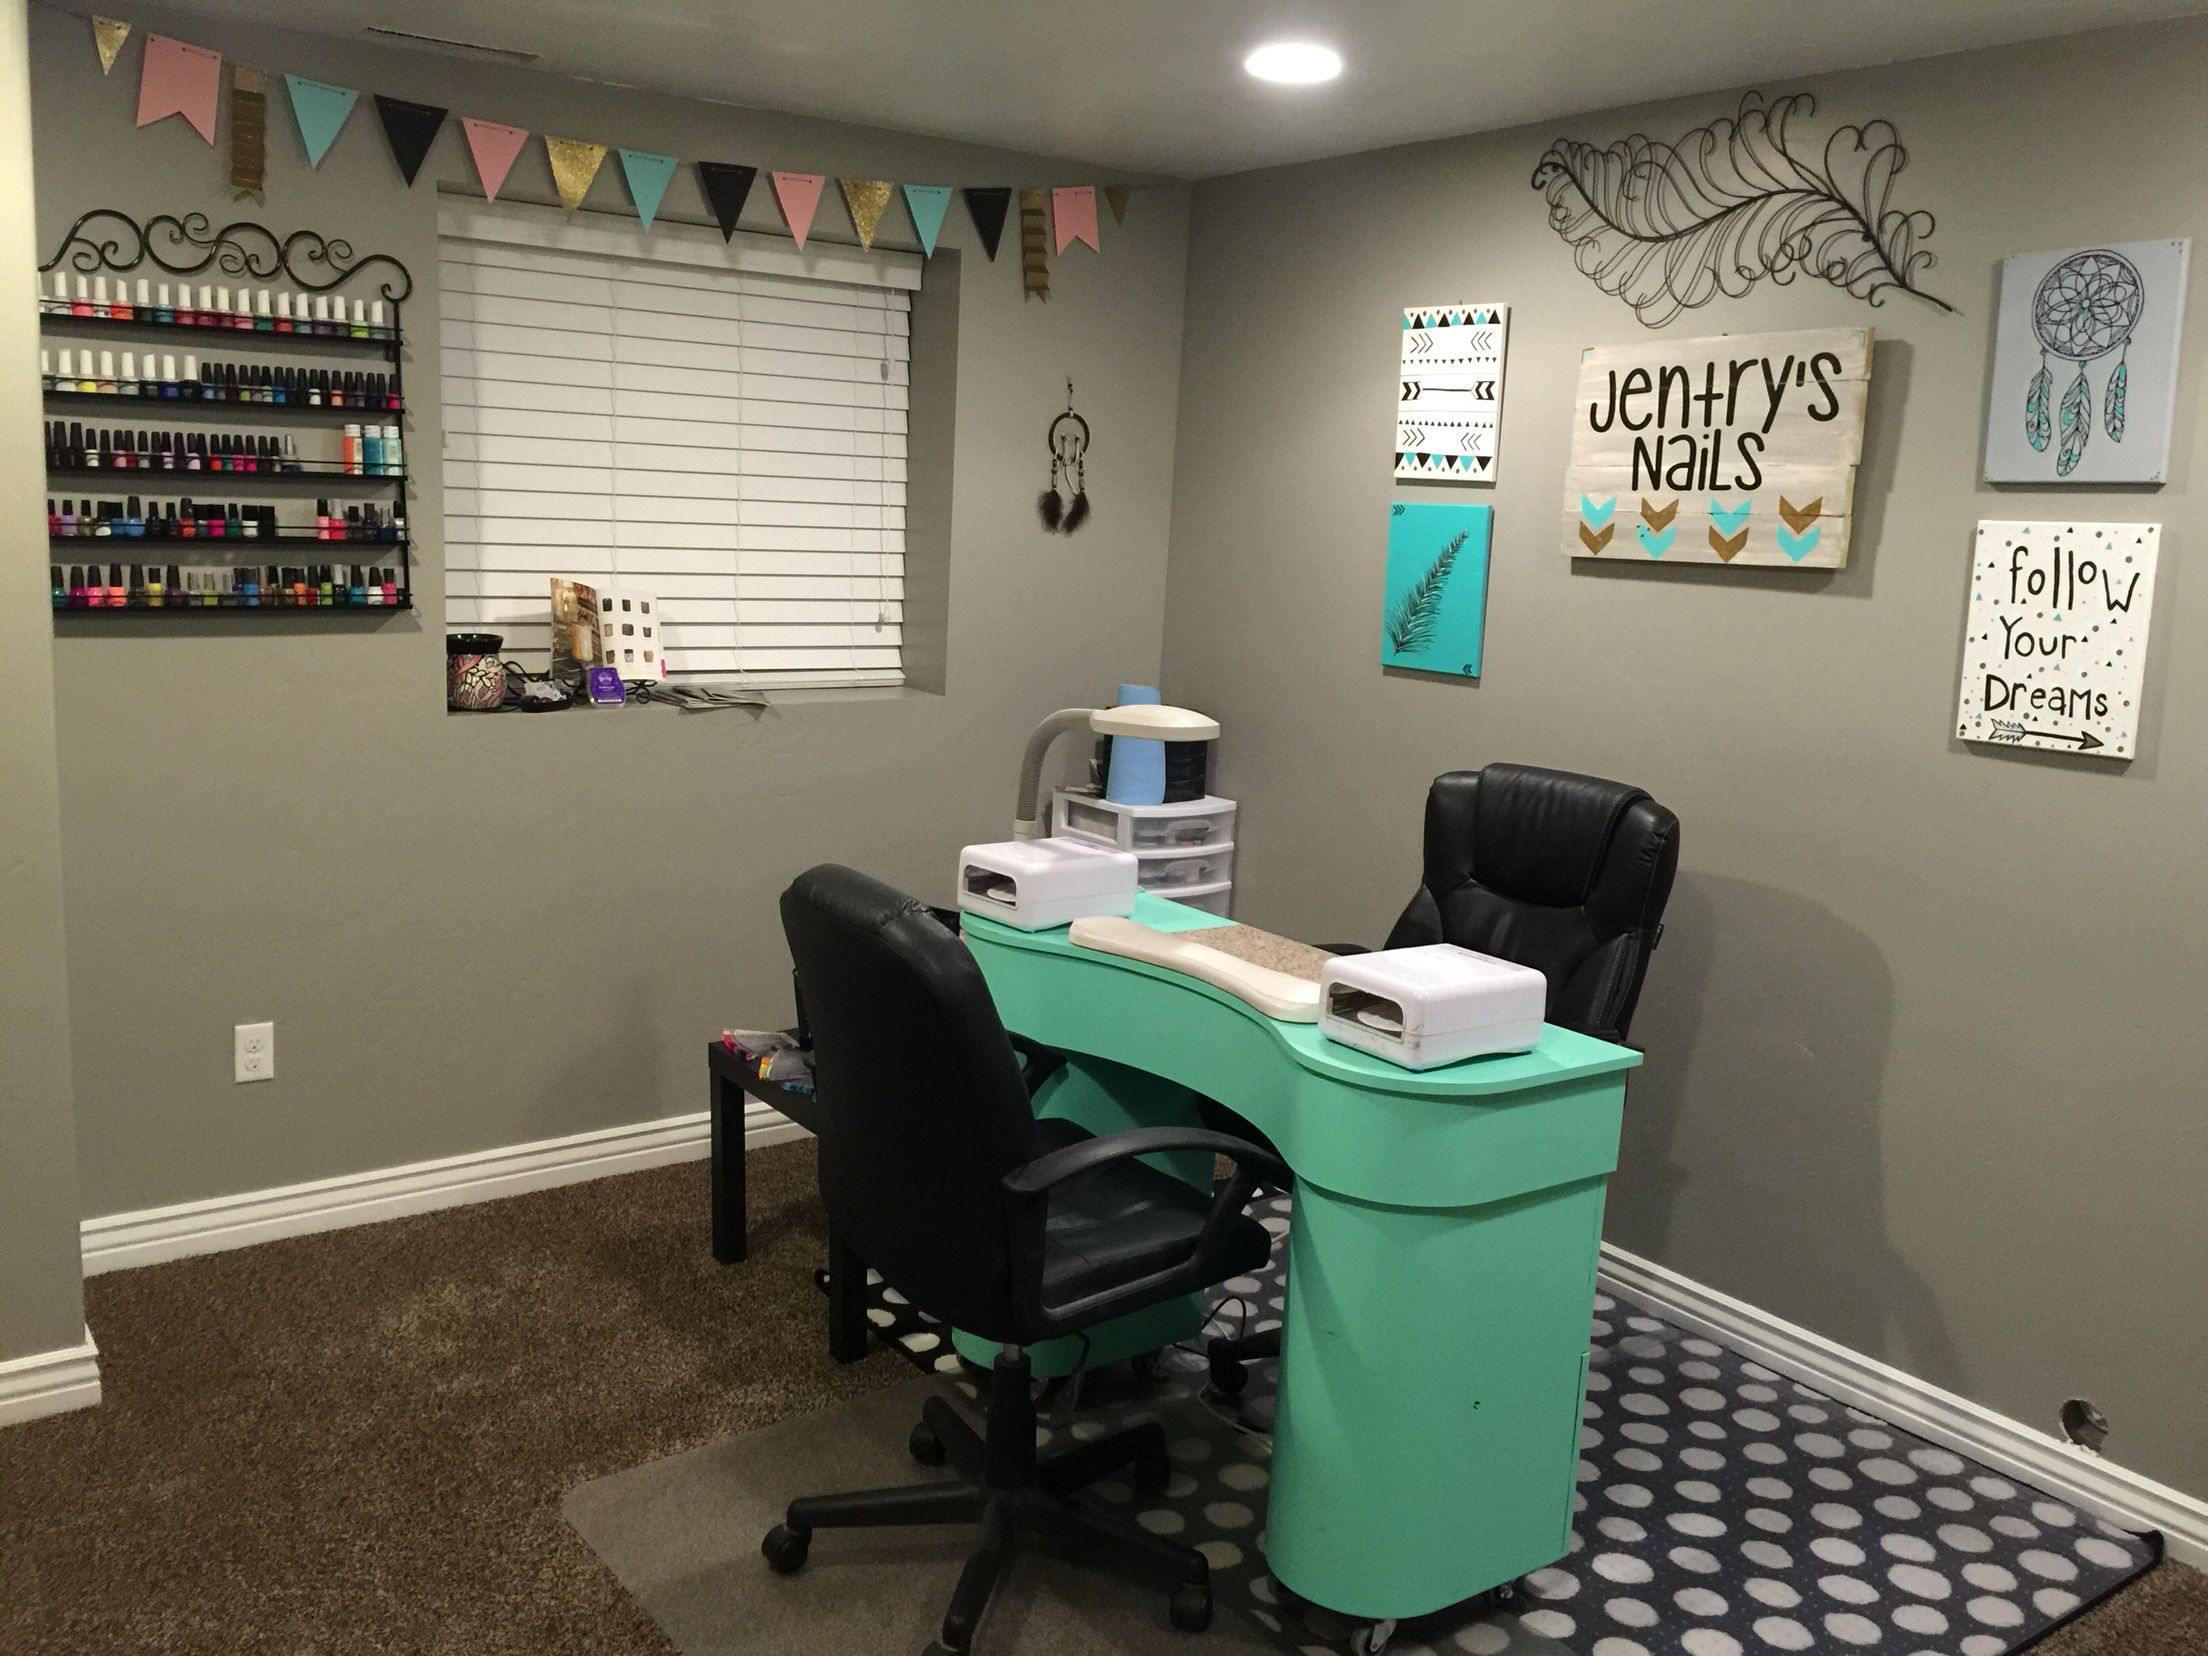 In home nail salon   Crafts   Pinterest   Nail salons  Salons and     In home nail salon